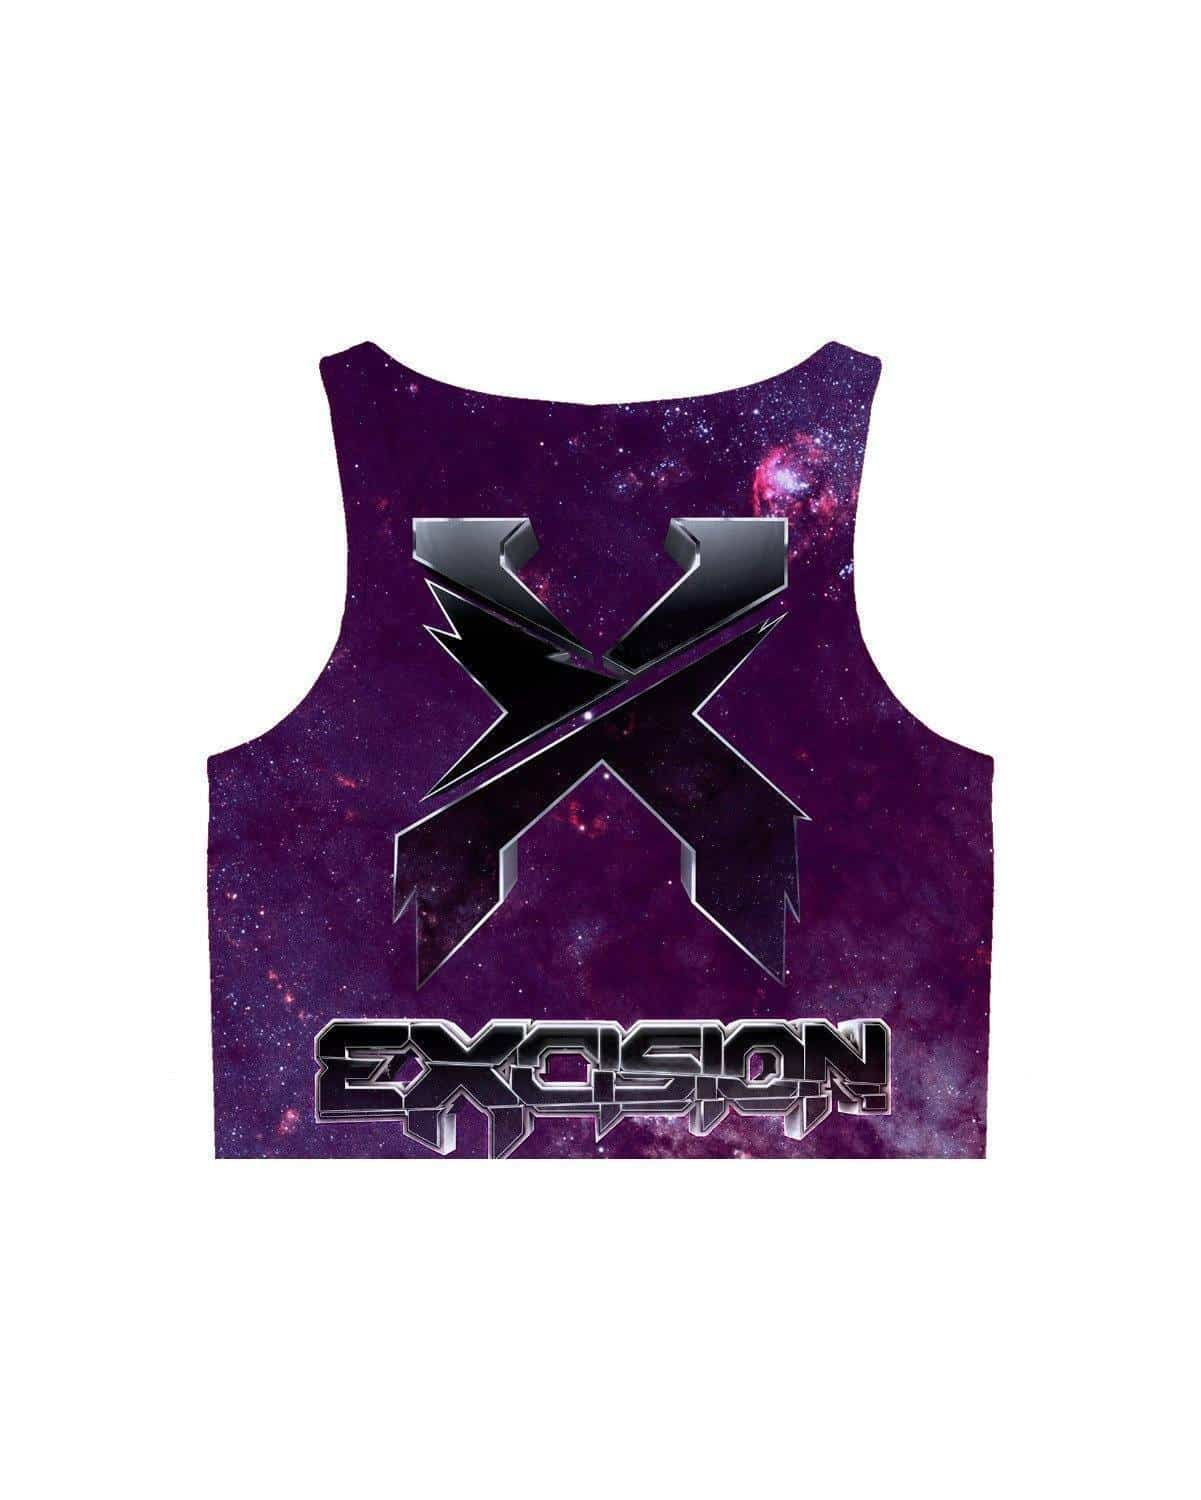 Excision Shambhala Mix 2016 Crop Top - Galaxy Version